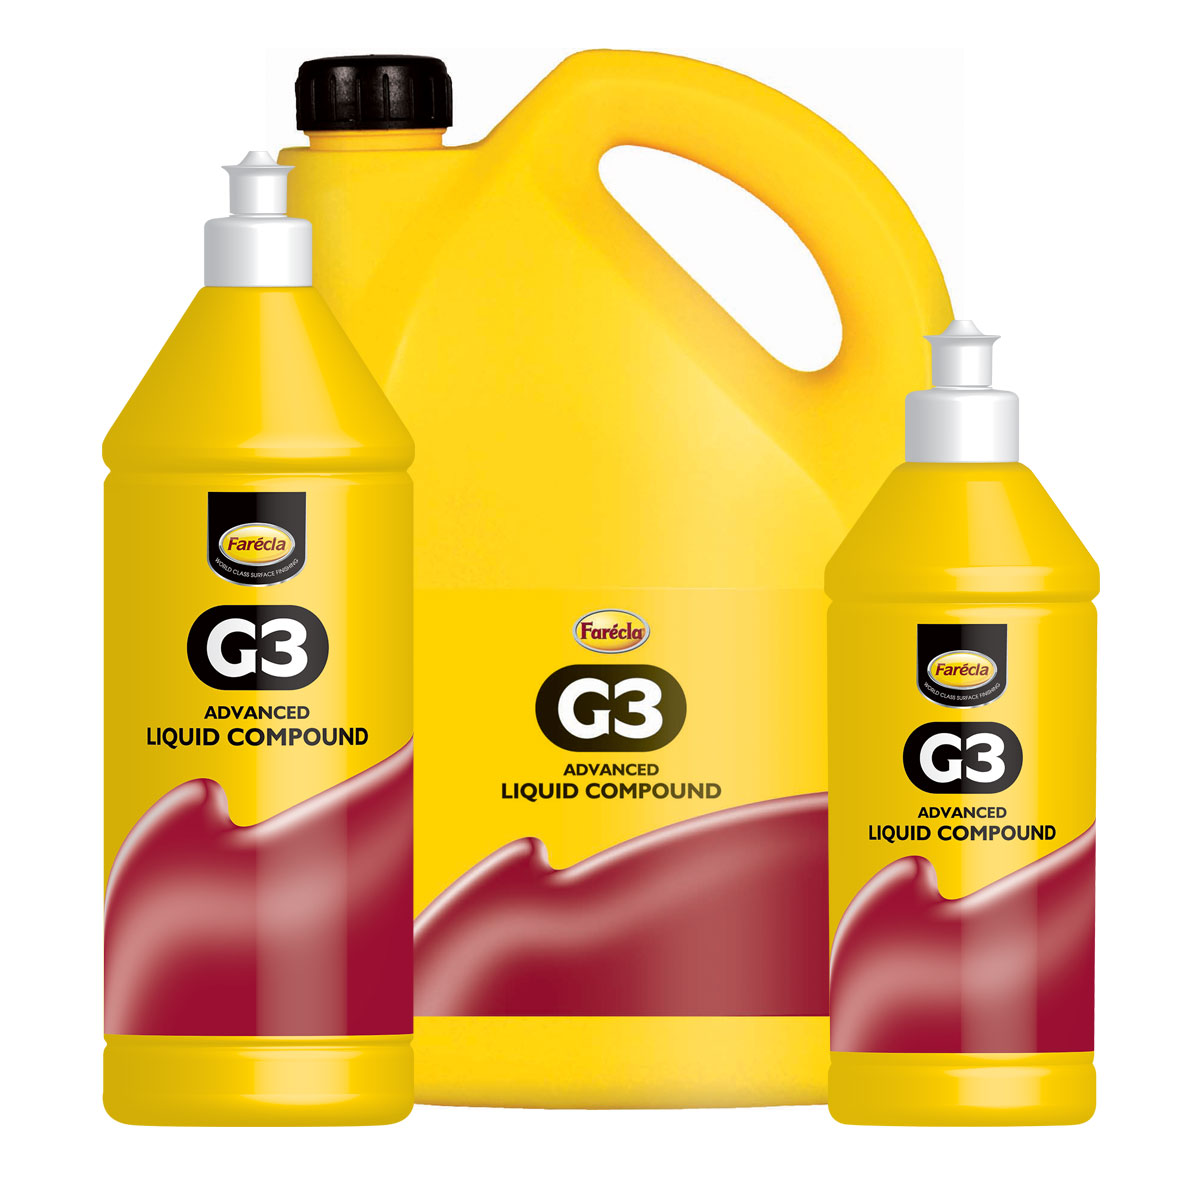 Advanced G3 Liquid Compound